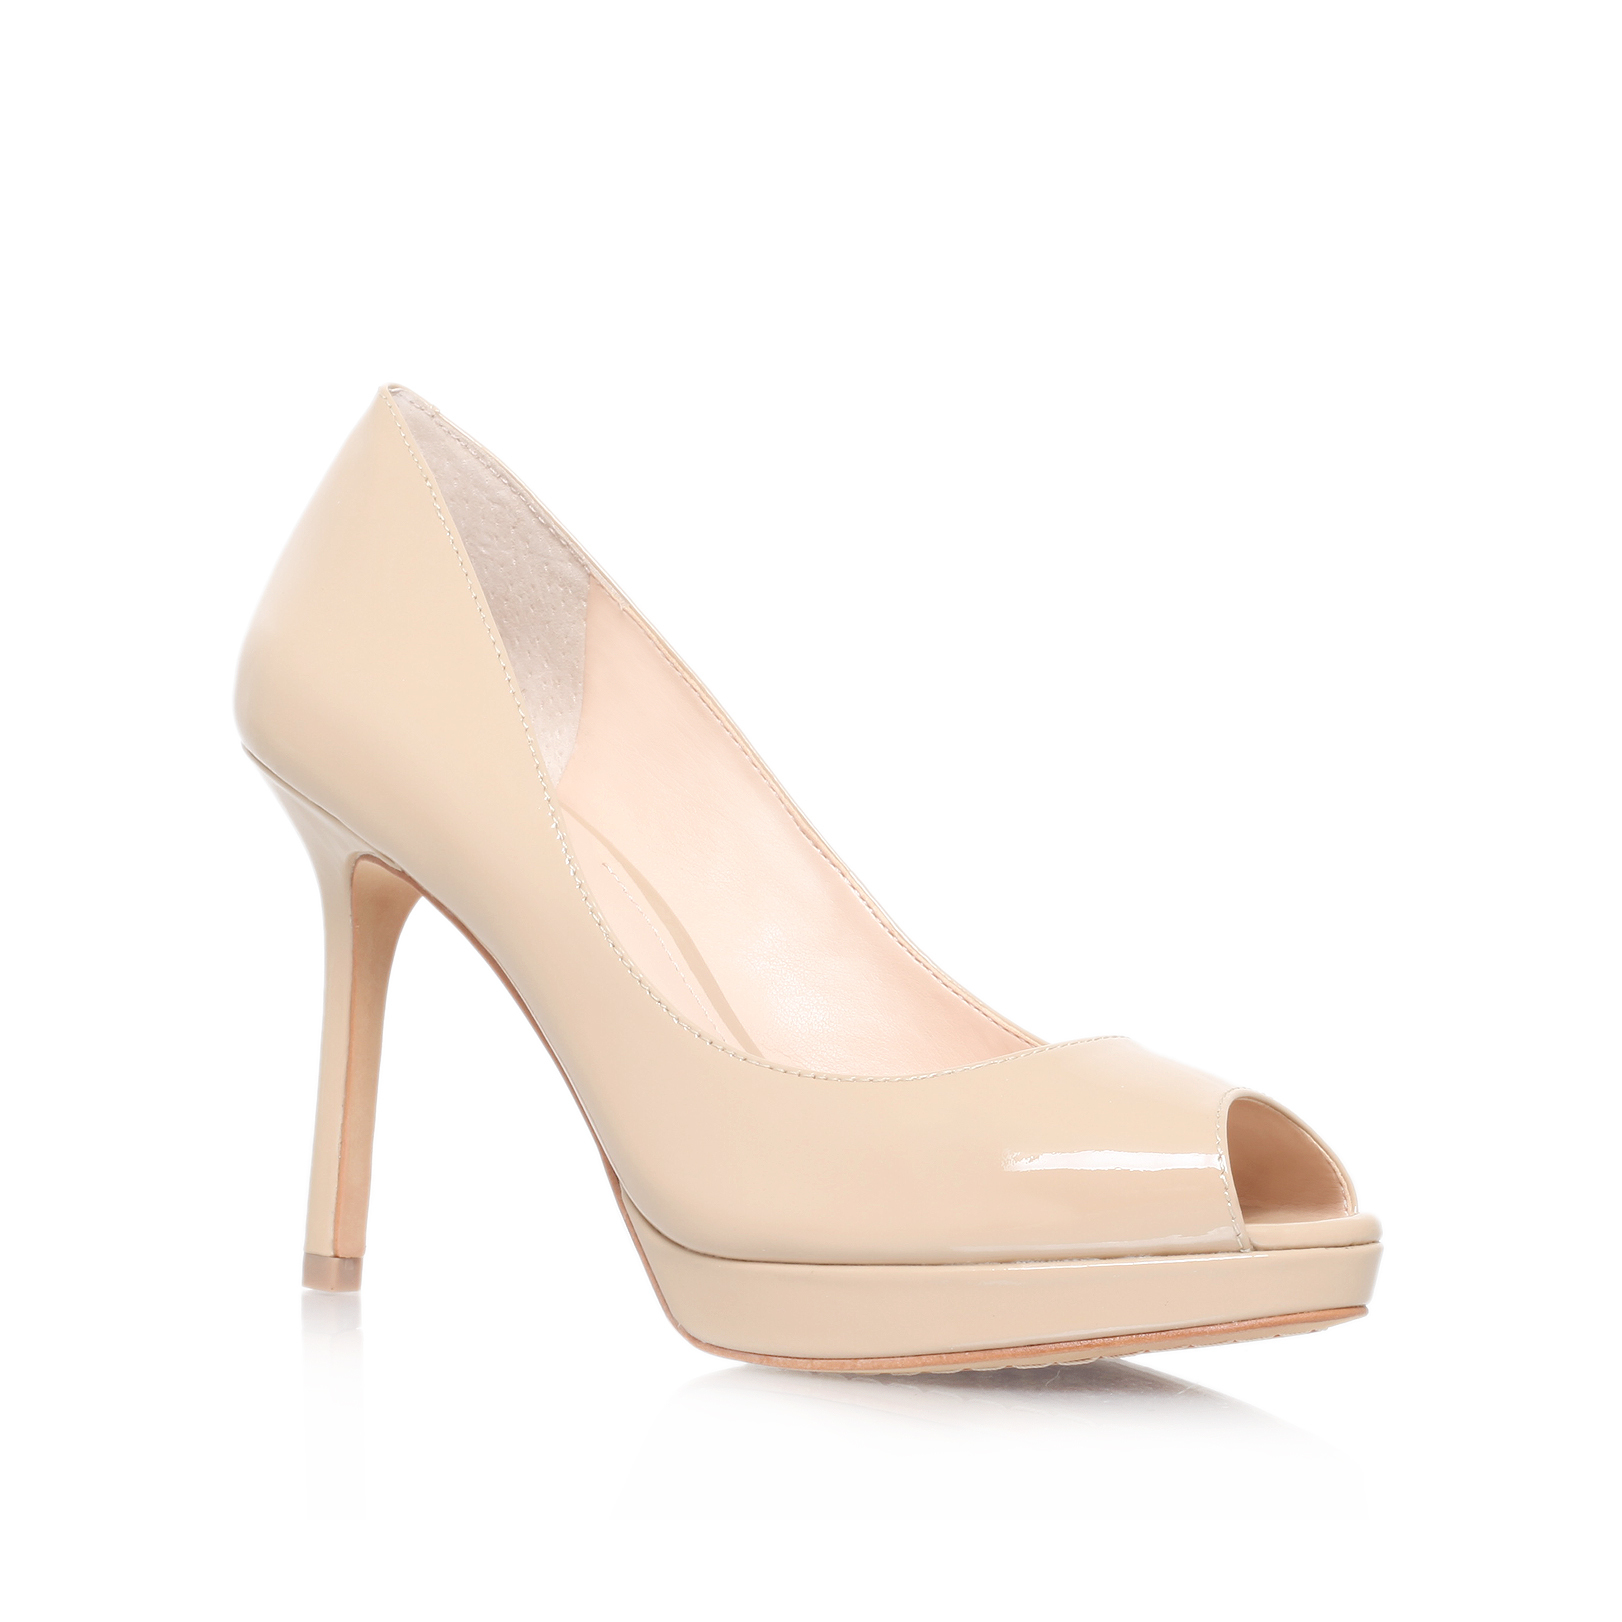 a0f96974de Vince Camuto | COPER Nude Peep Toe High Heel Shoes by VINCE CAMUTO